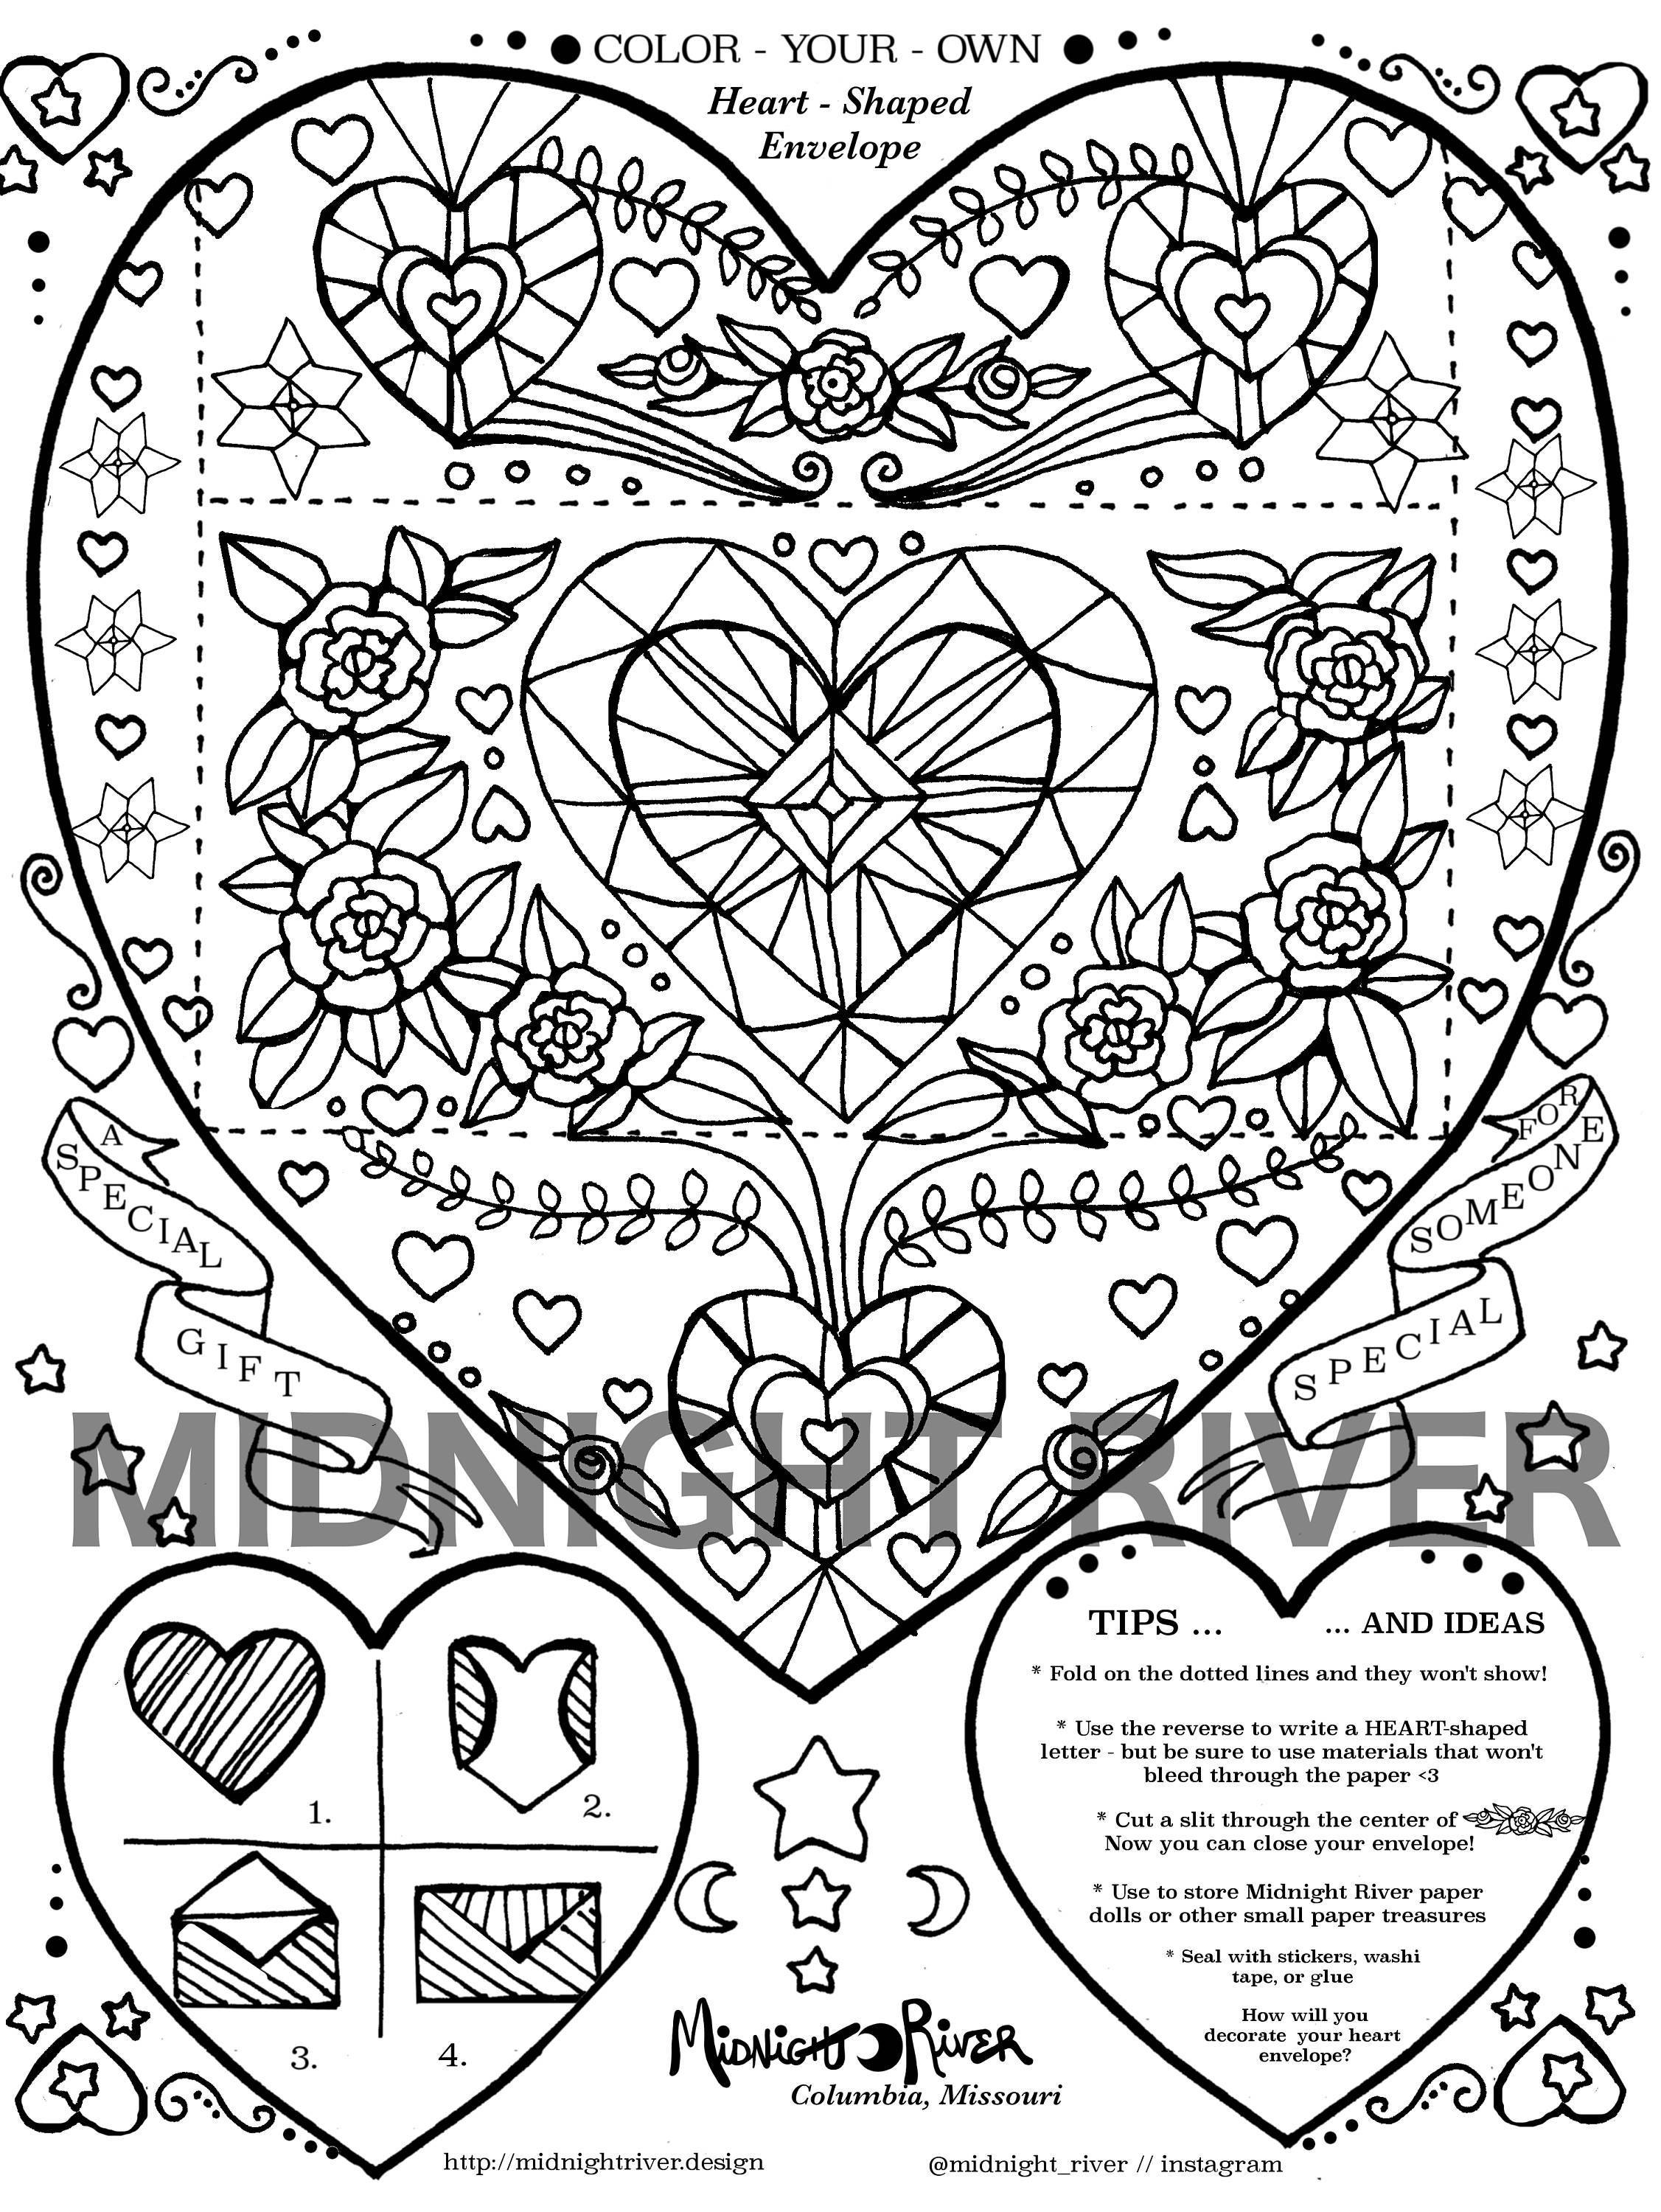 origami heart instructions printable how to fold a letter into a heart shape heart origami instructions printable